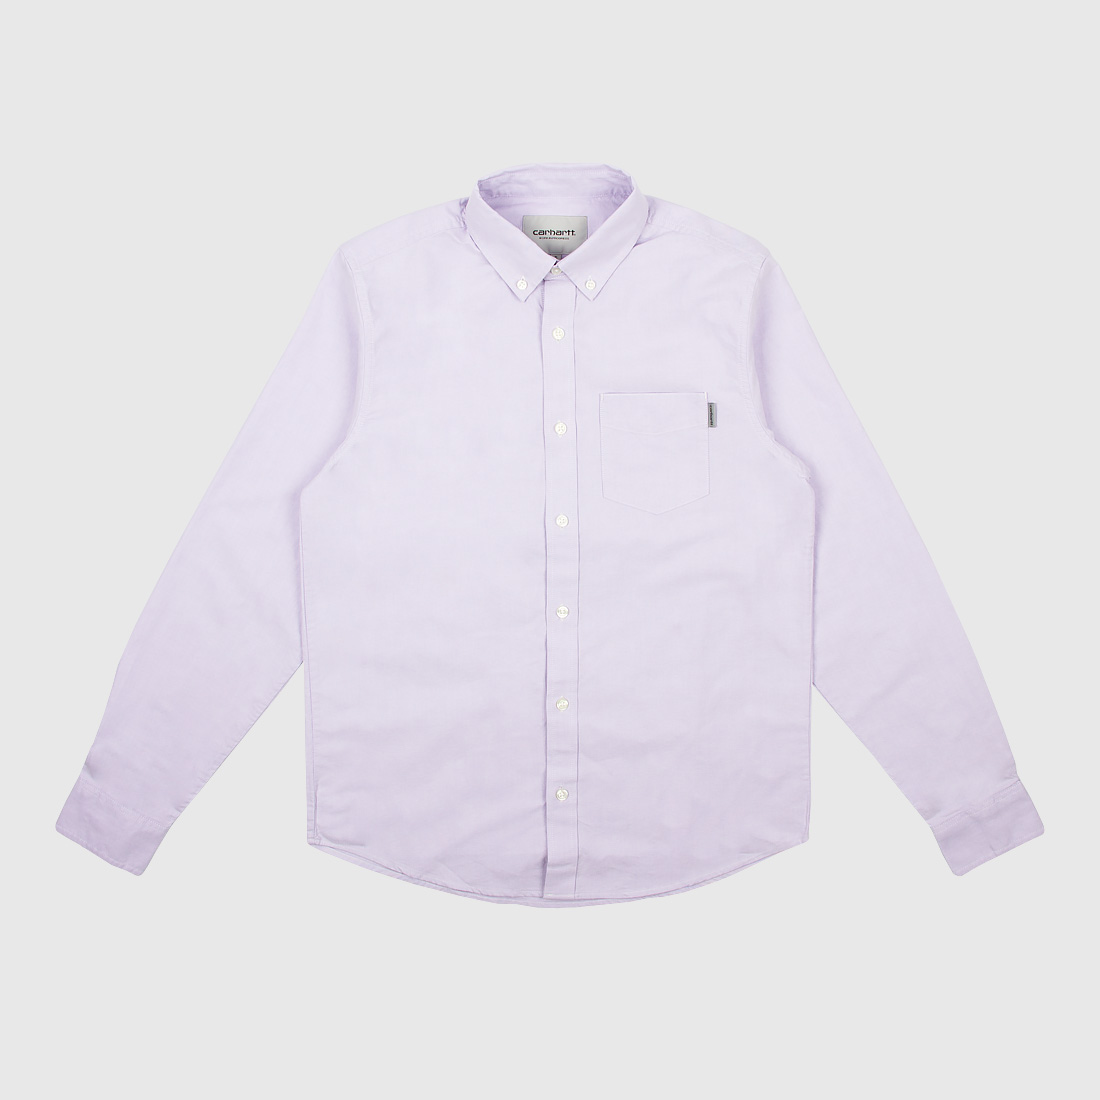 e77971232fc2 Рубашка Carhartt WIP L/S Button Down Pocket Shirt Soft Lavender ...